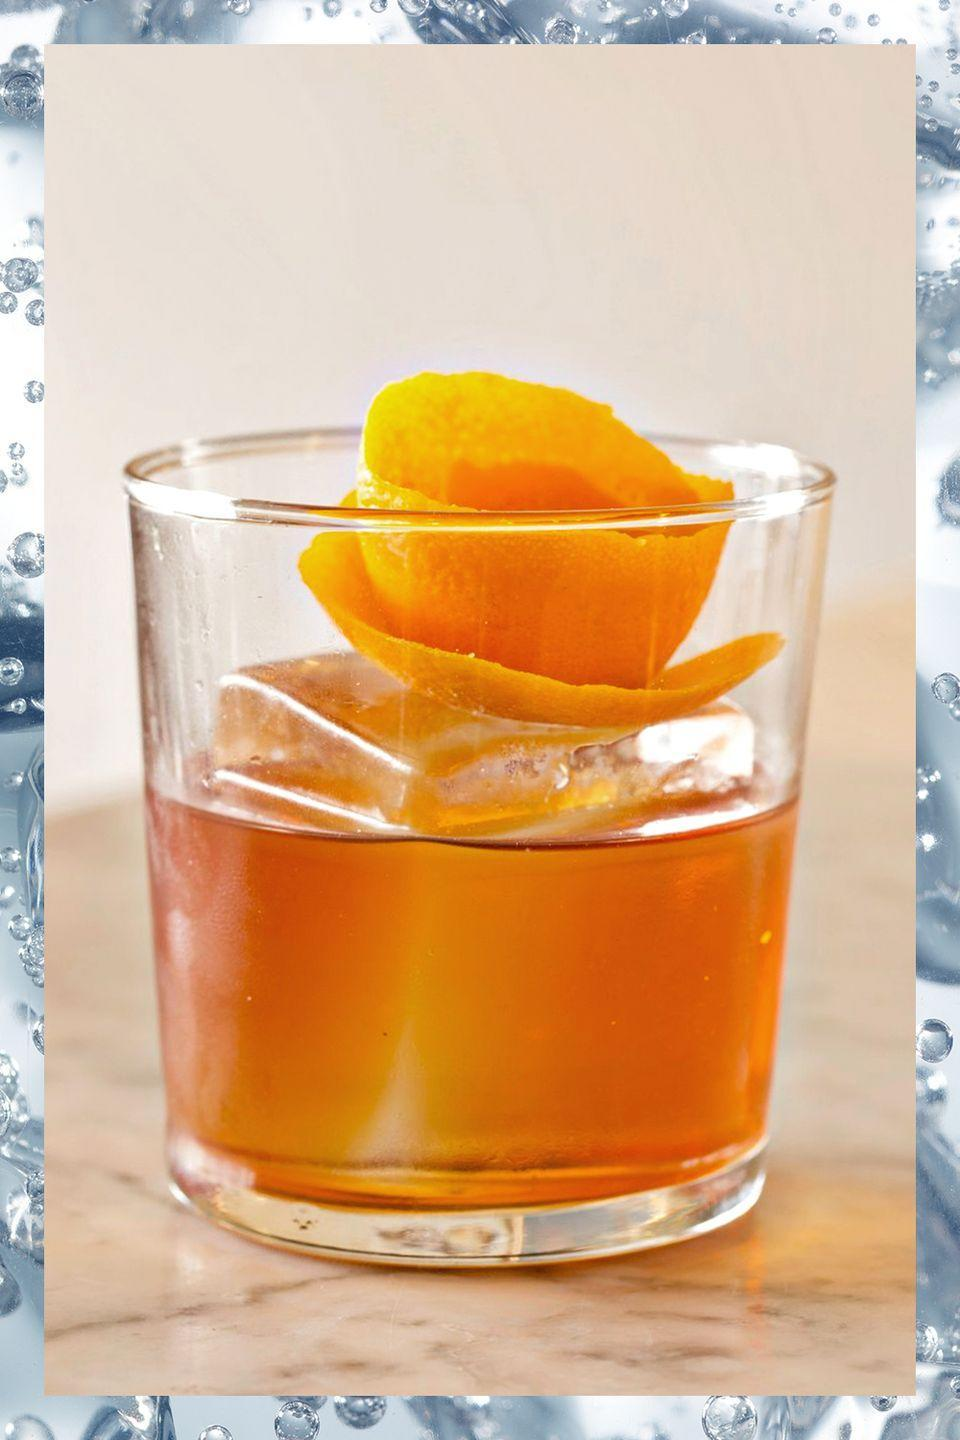 """<p>There may be no better test of a bartender's mettle than ordering an Old Fashioned. The recipe is simple:</p><p>- 2 oz bourbon or rye whiskey<br>- 2 dashes Angostura bitters<br>- 1 sugar cube or 1 tsp sugar<br>- Orange twist garnish</p><p><em>Put sugar in glass. Cover it with dashes of bitters. Add whiskey and stir until sugar dissolves. Add ice, stir again, and serve. If the barman starts shaking the ingredients or muddling fruit, have your next round at another bar. </em></p><p><strong>More:</strong> <a href=""""https://www.townandcountrymag.com/leisure/drinks/g1178/old-fashioned-variation-cocktail-recipes/"""" rel=""""nofollow noopener"""" target=""""_blank"""" data-ylk=""""slk:New Takes on the Old Fashioned Drink"""" class=""""link rapid-noclick-resp"""">New Takes on the Old Fashioned Drink</a></p>"""